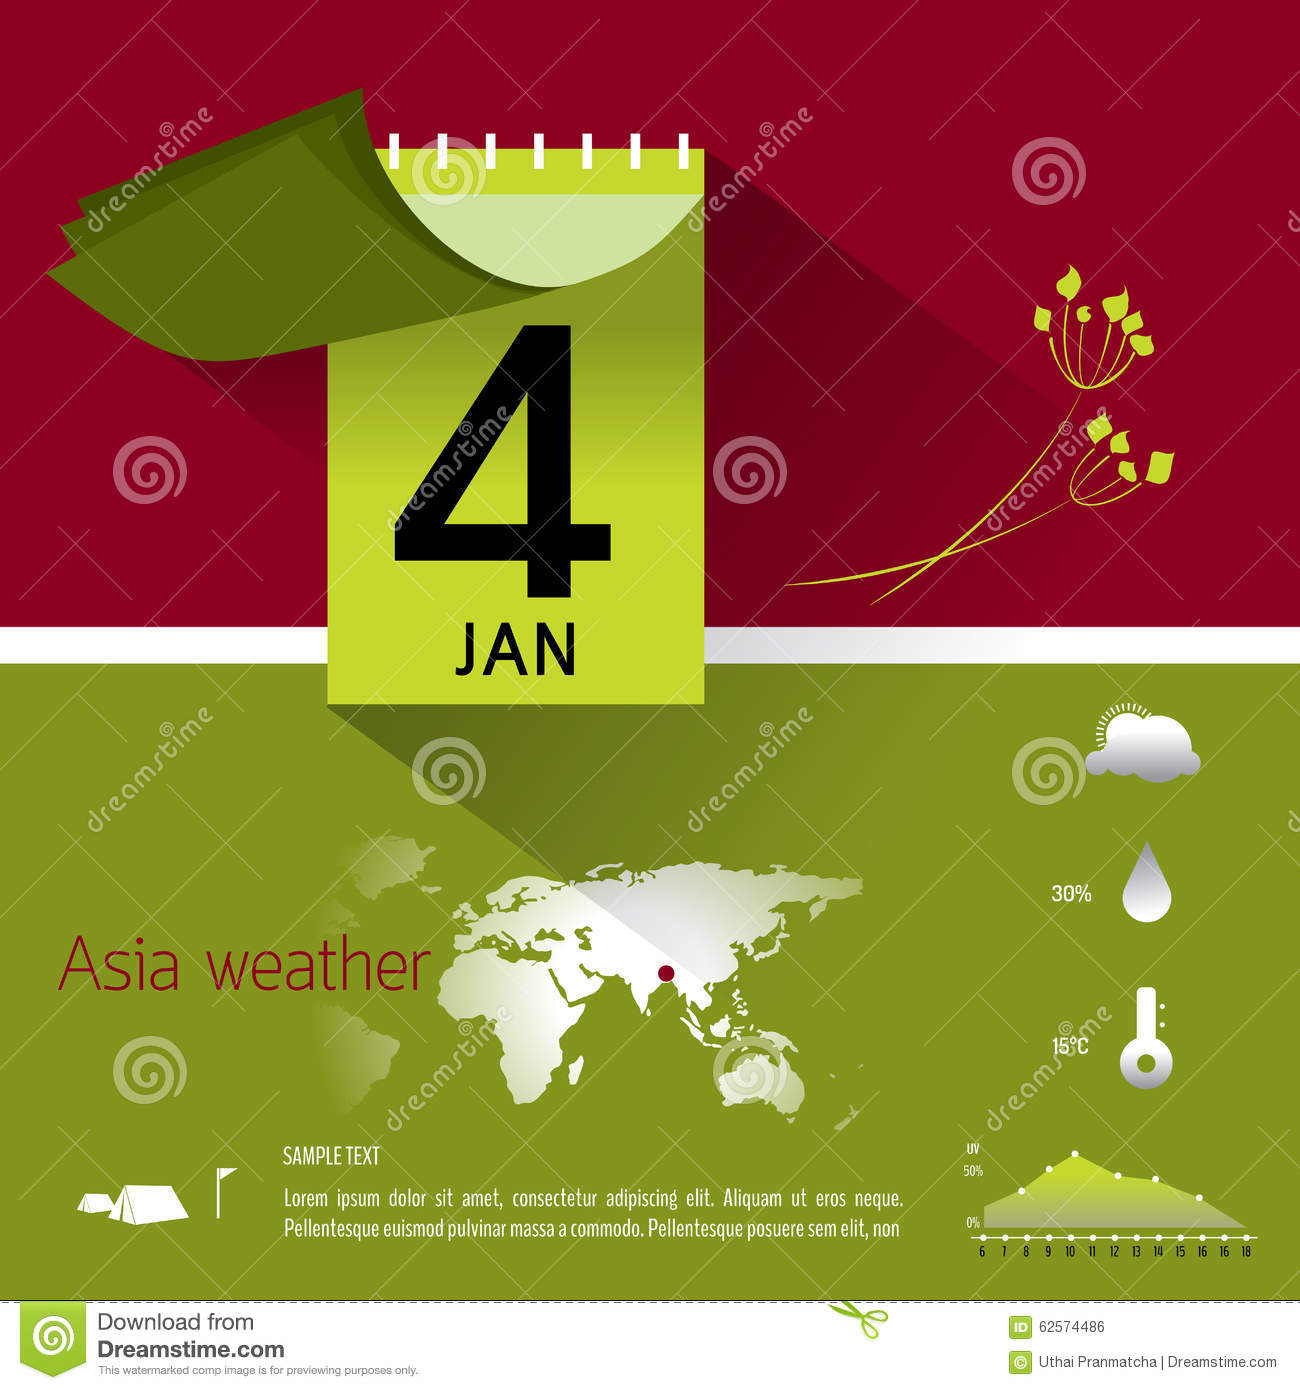 Calendar Design Eps File : Graphic info about calendar and weather stock vector